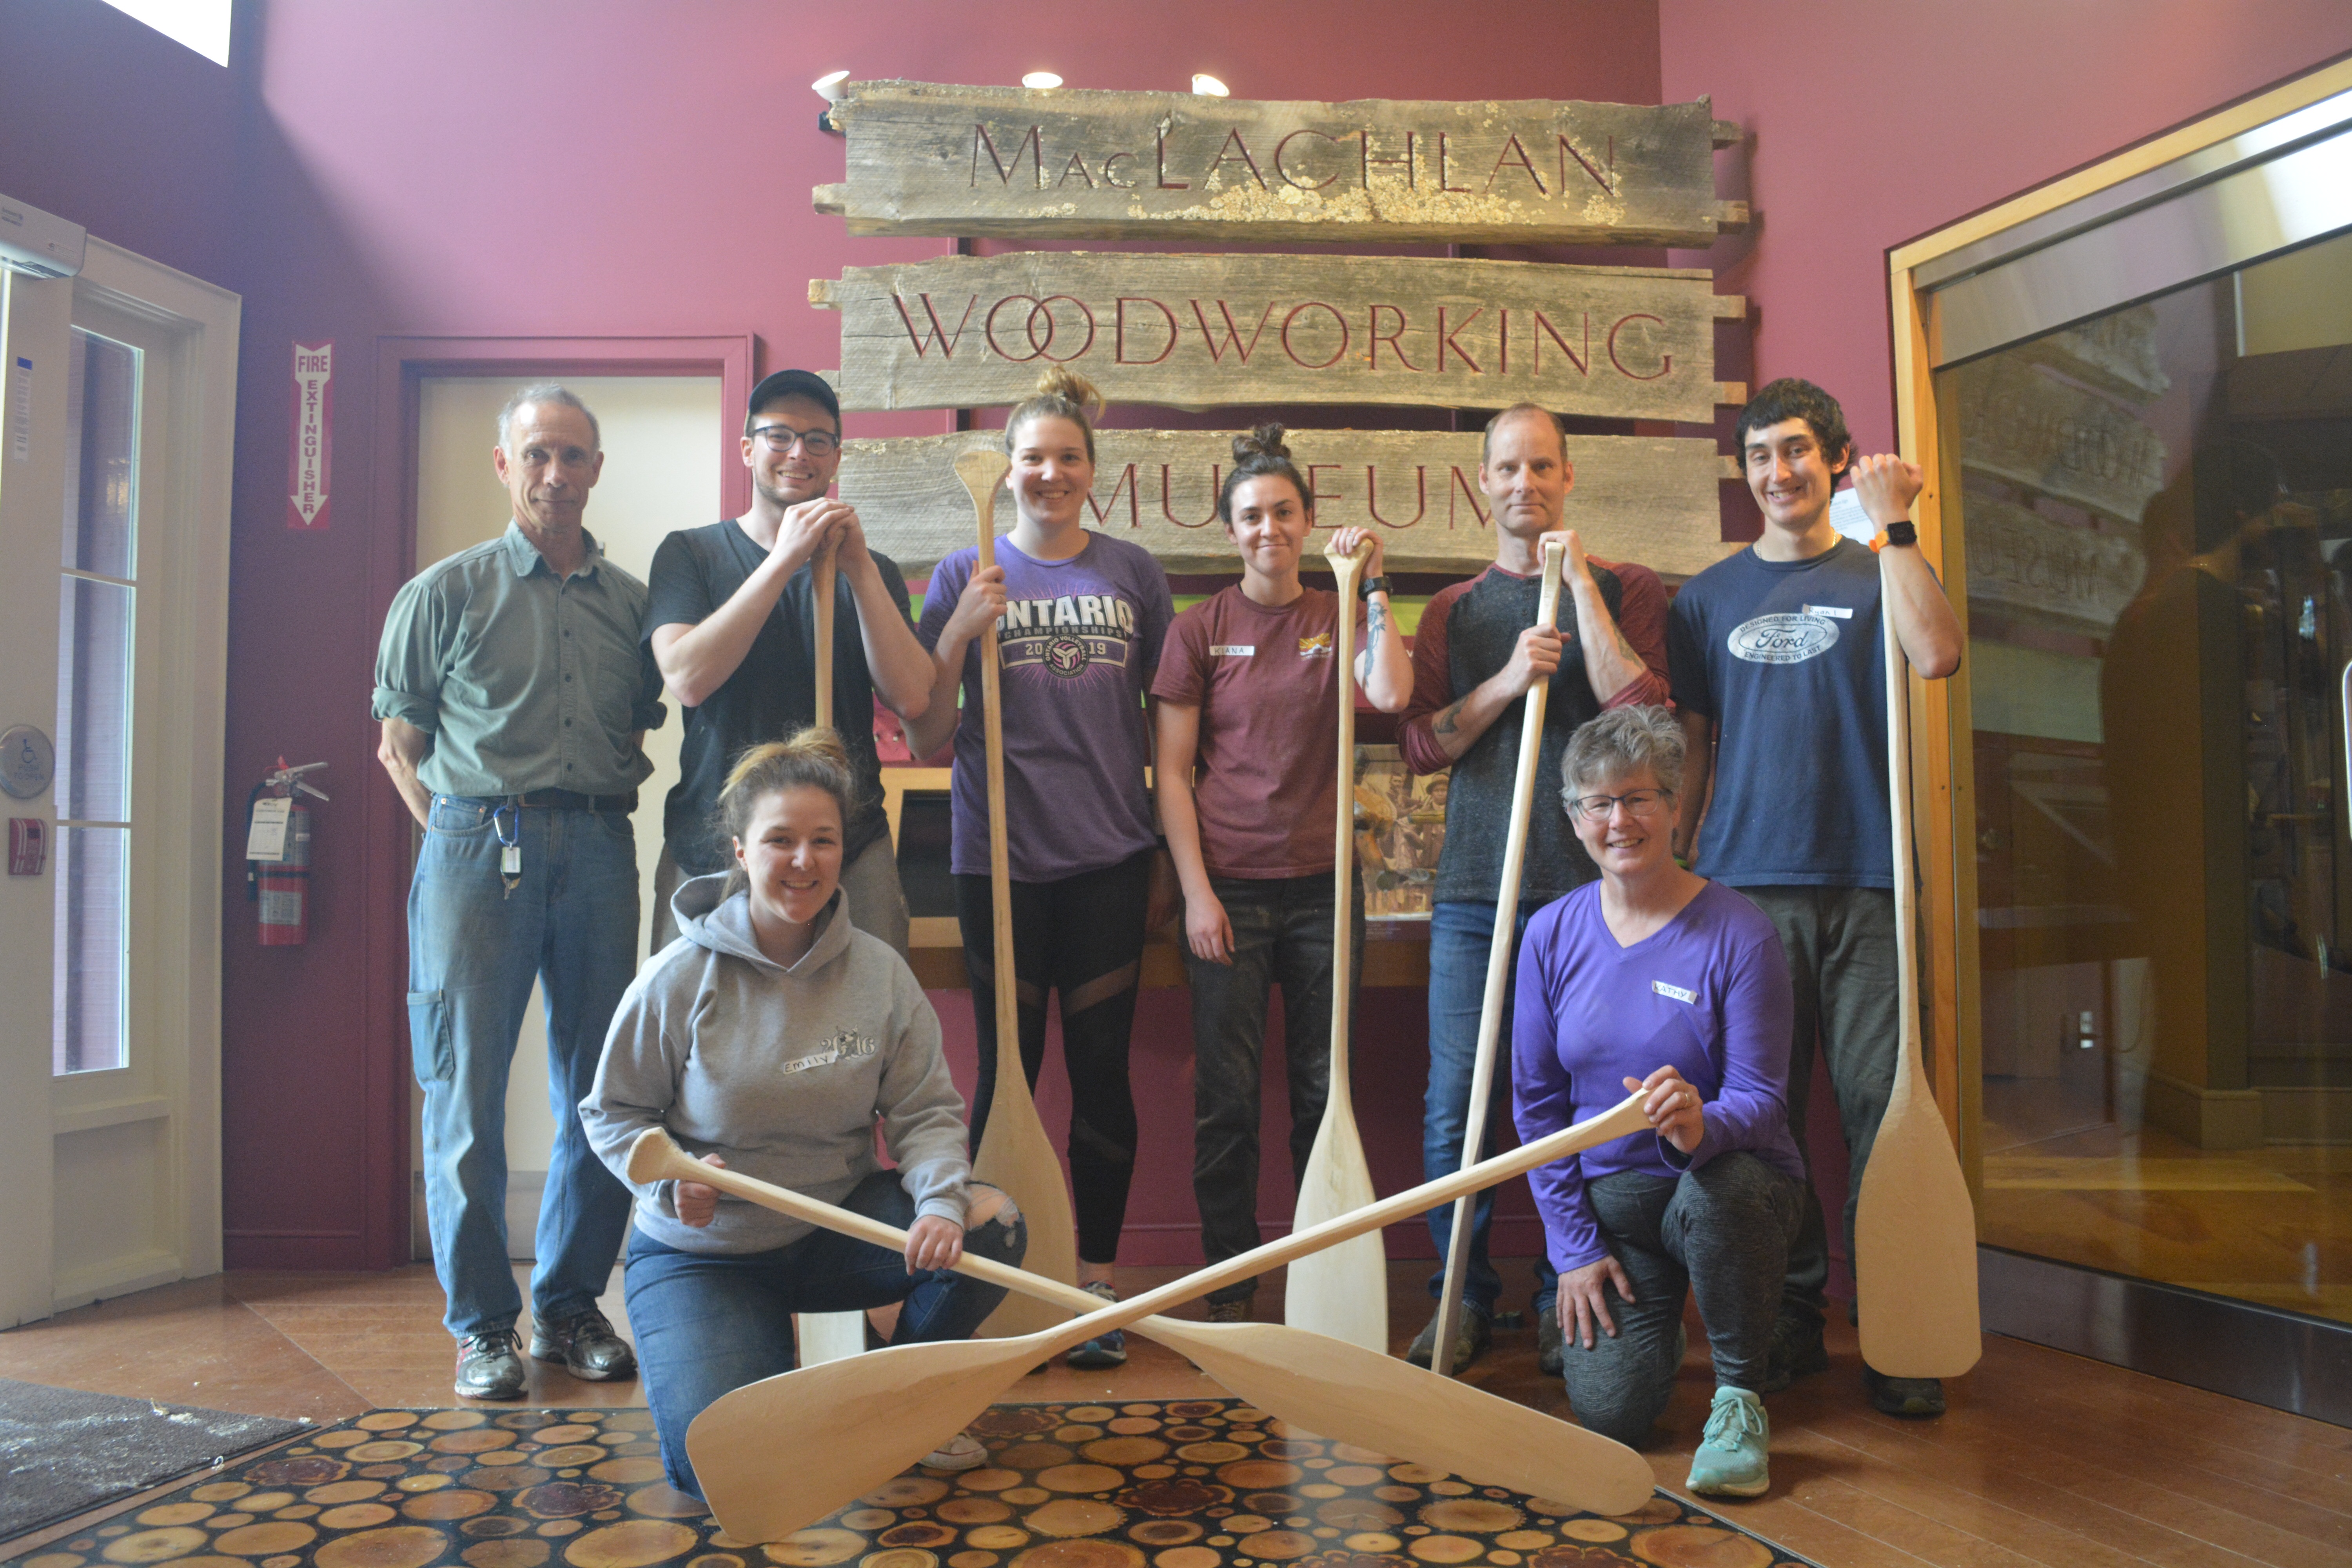 Make your own paddle workshop